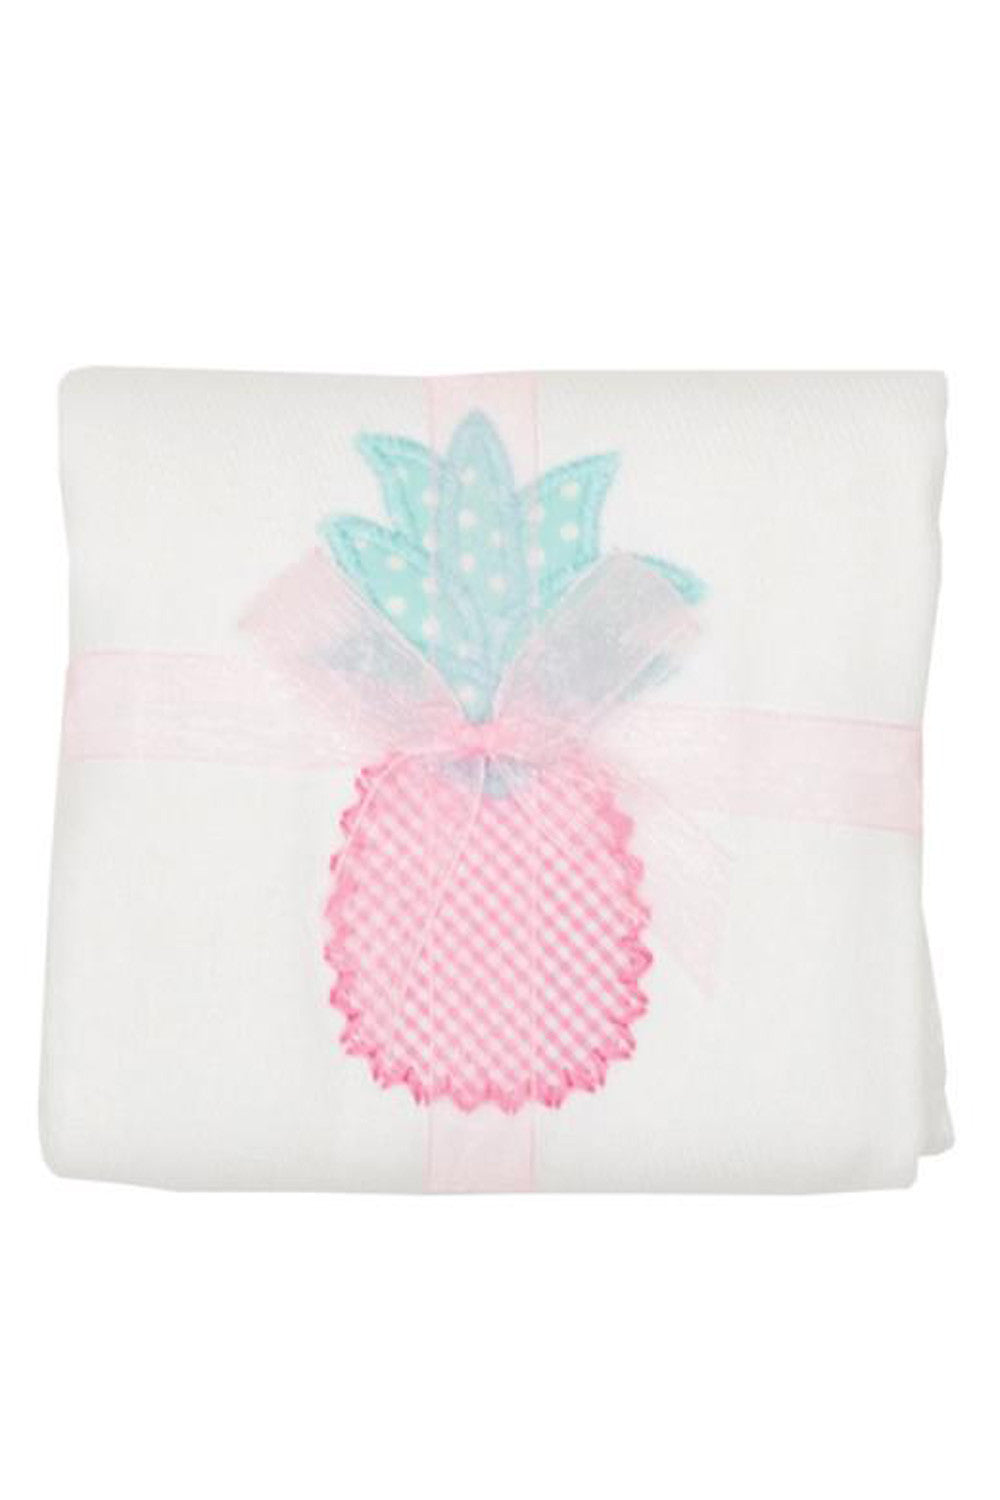 Applique Burp Pad - Pineapple